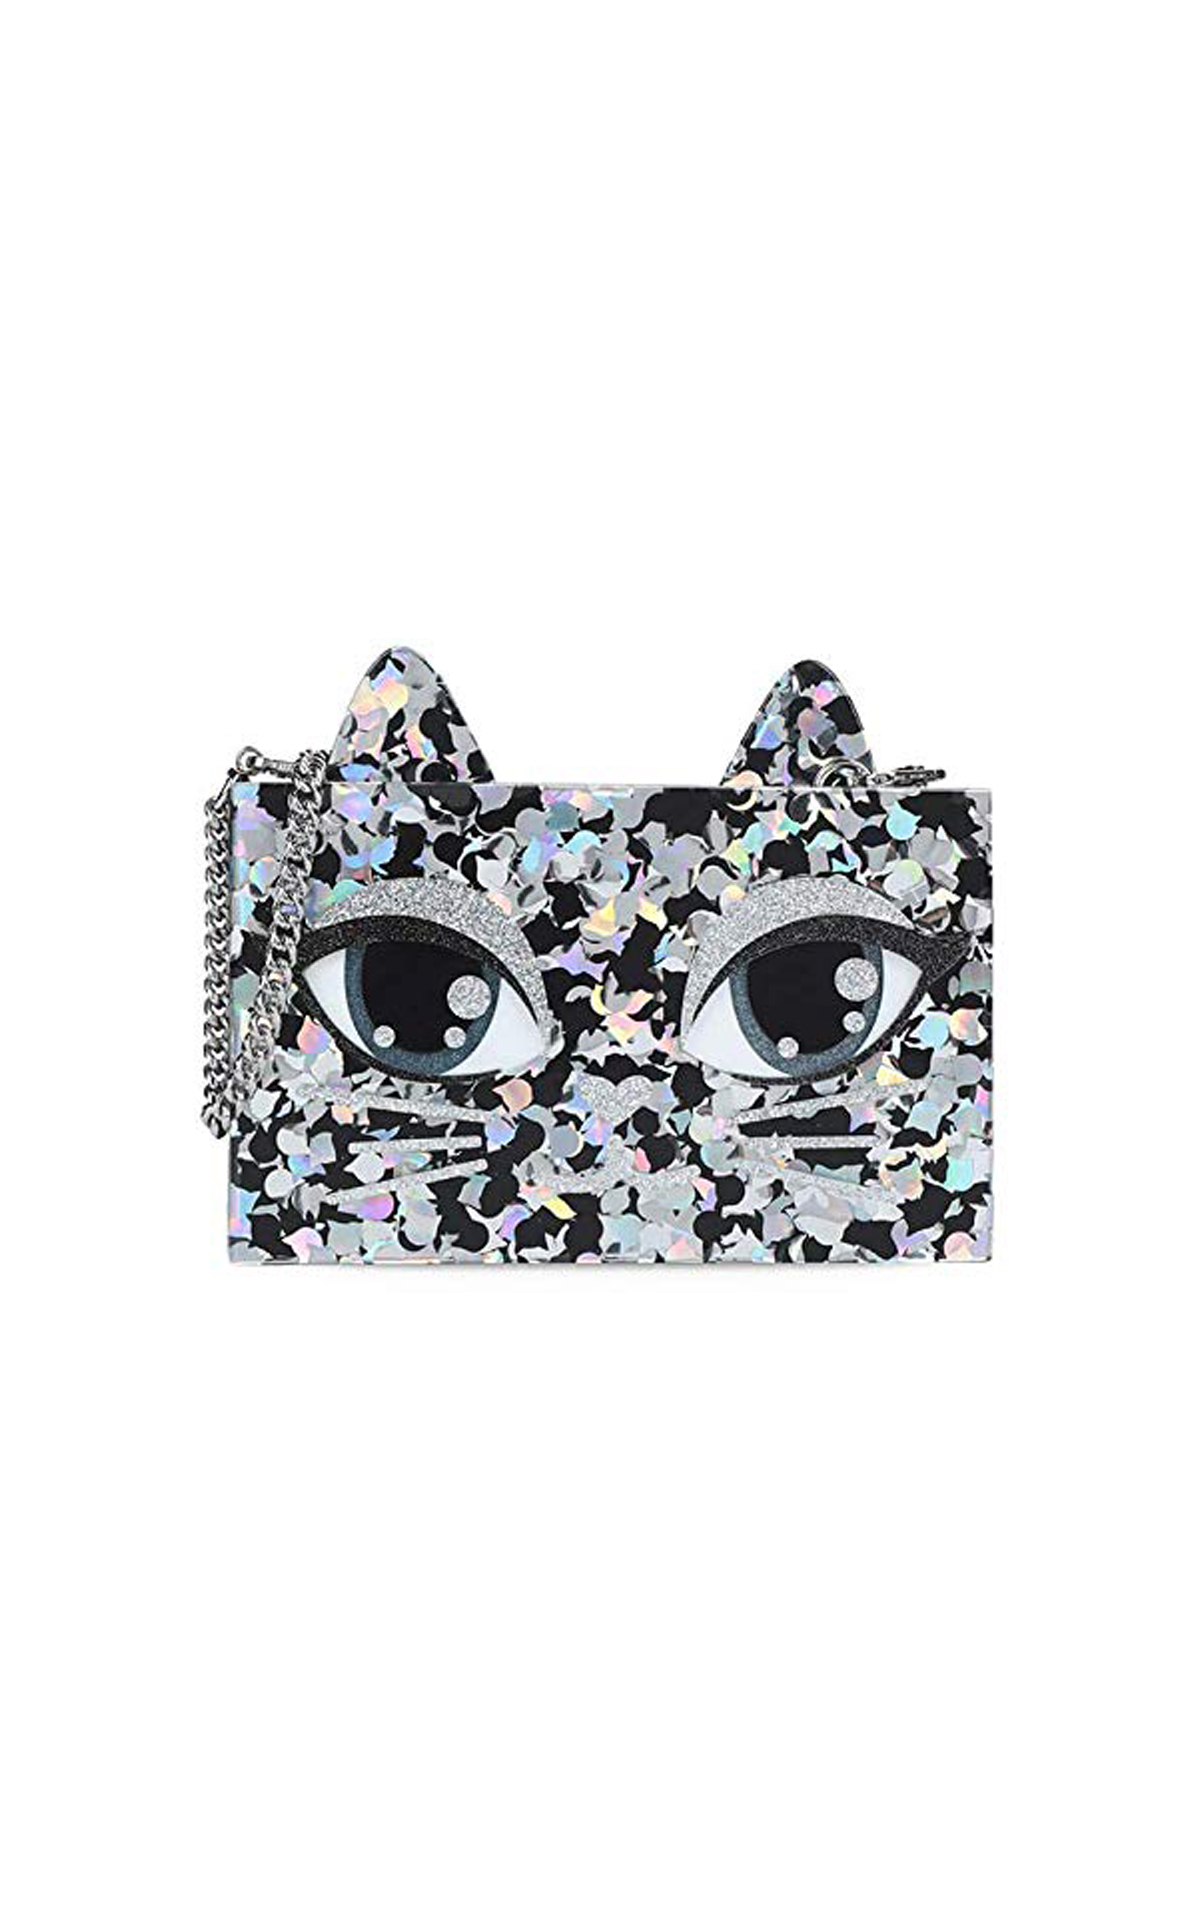 Cat handbag Karl Lagerfeld